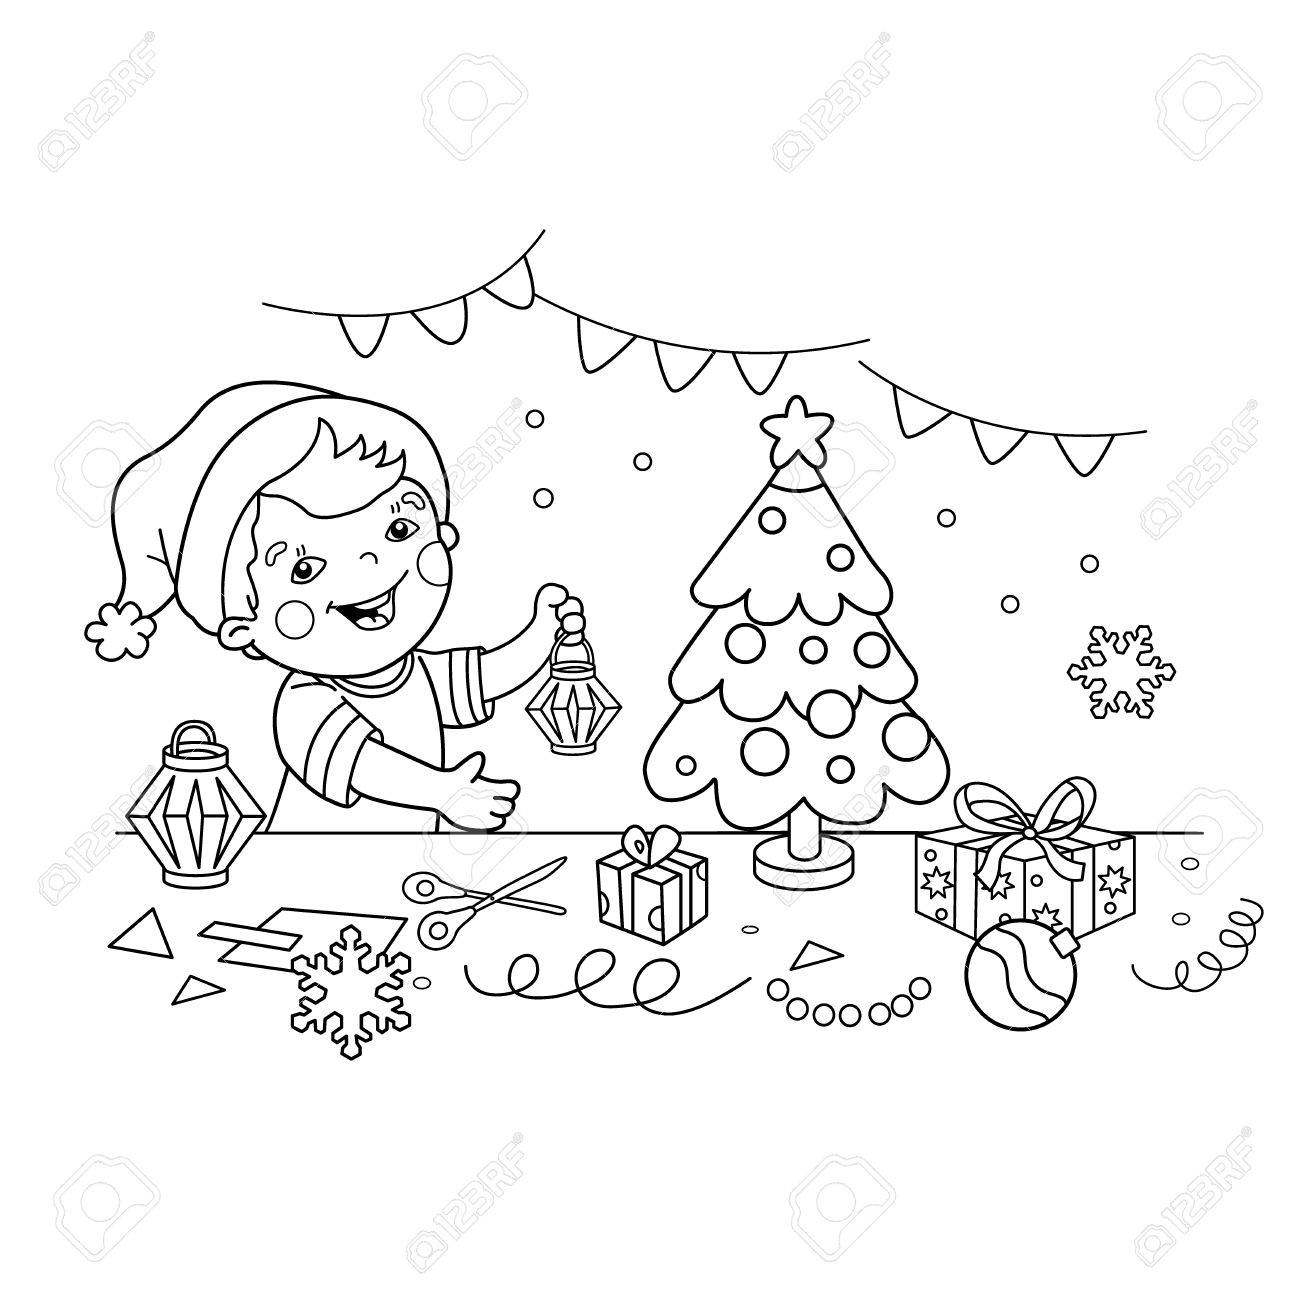 1300x1300 Coloring Page Outline Of Cartoon Boy Making Christmas Paper